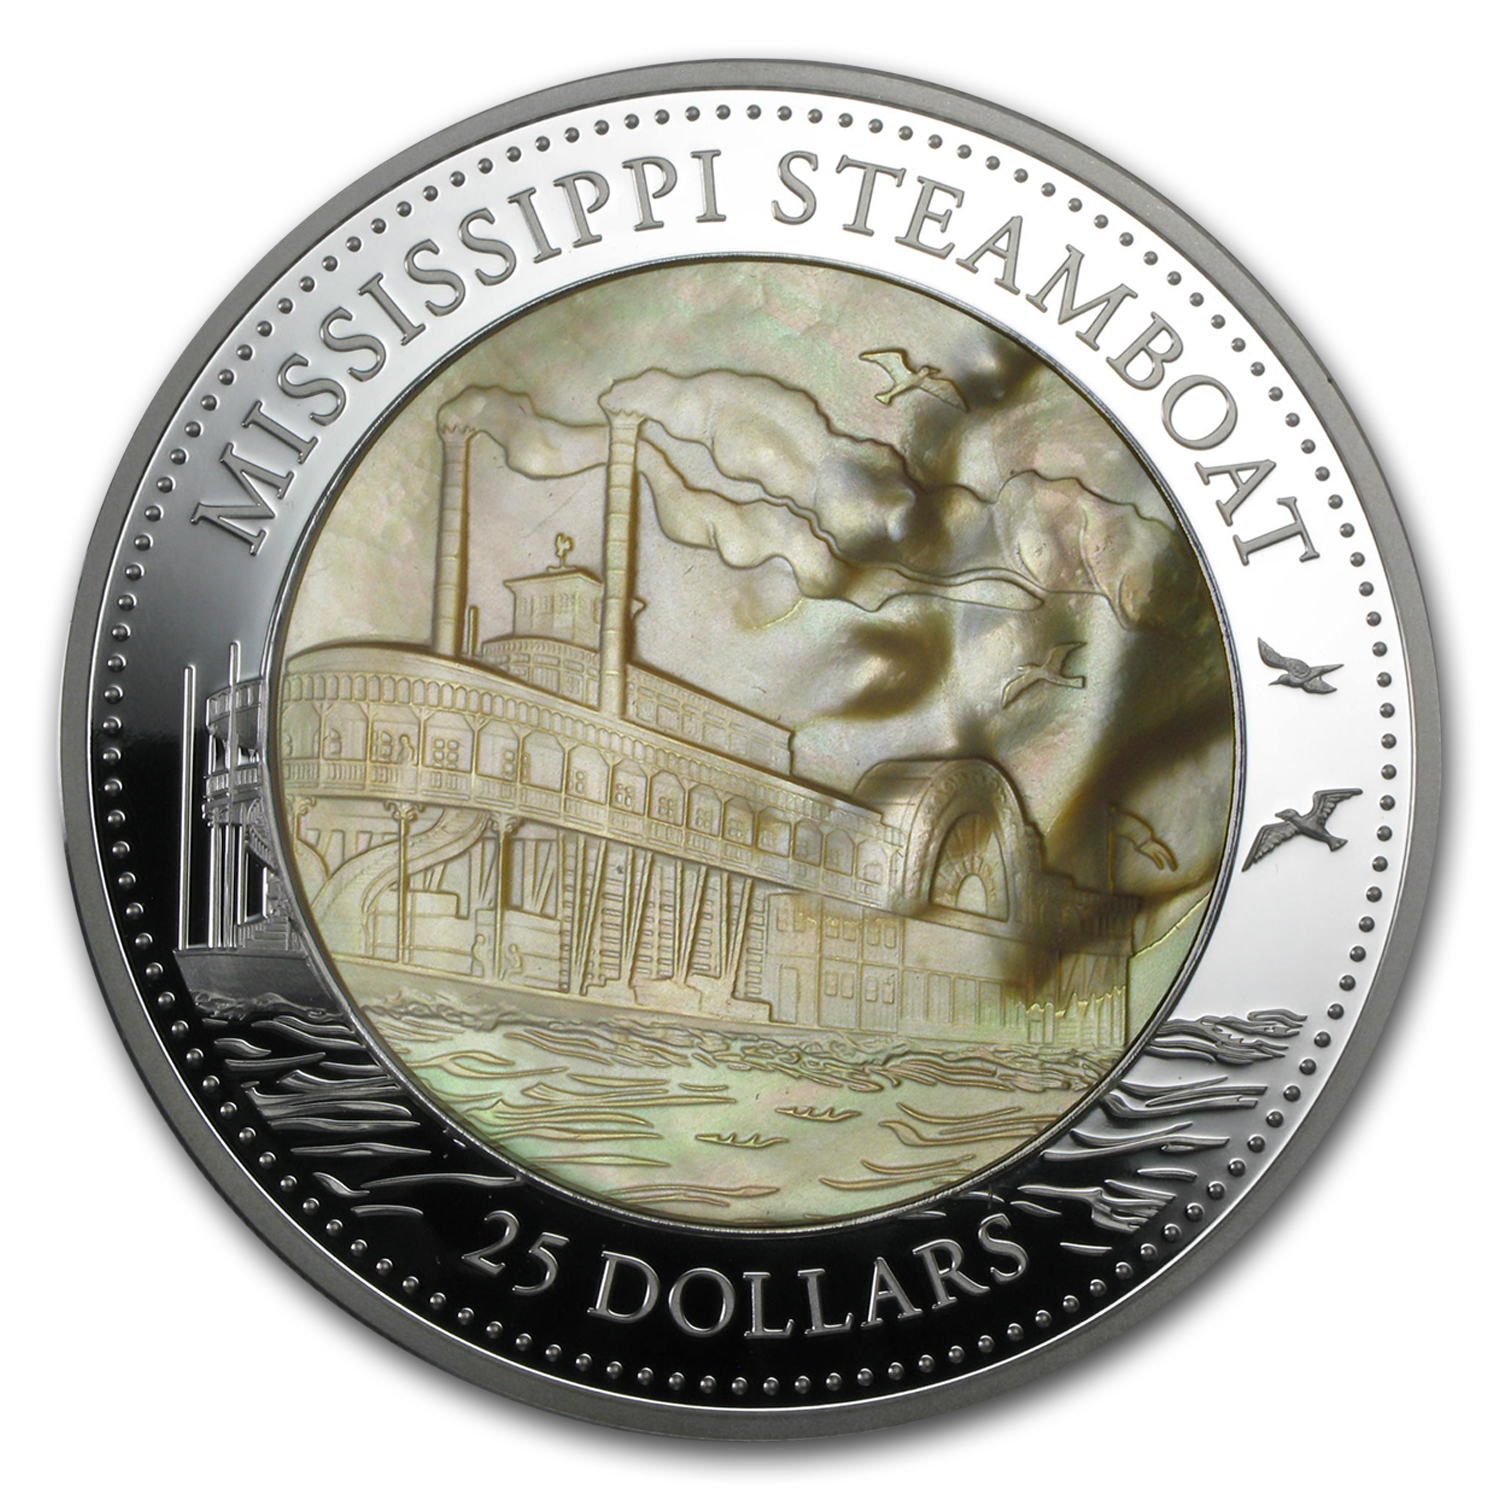 2015 Cook Isl 5 oz Silver Mother of Pearl Mississippi Steamboat